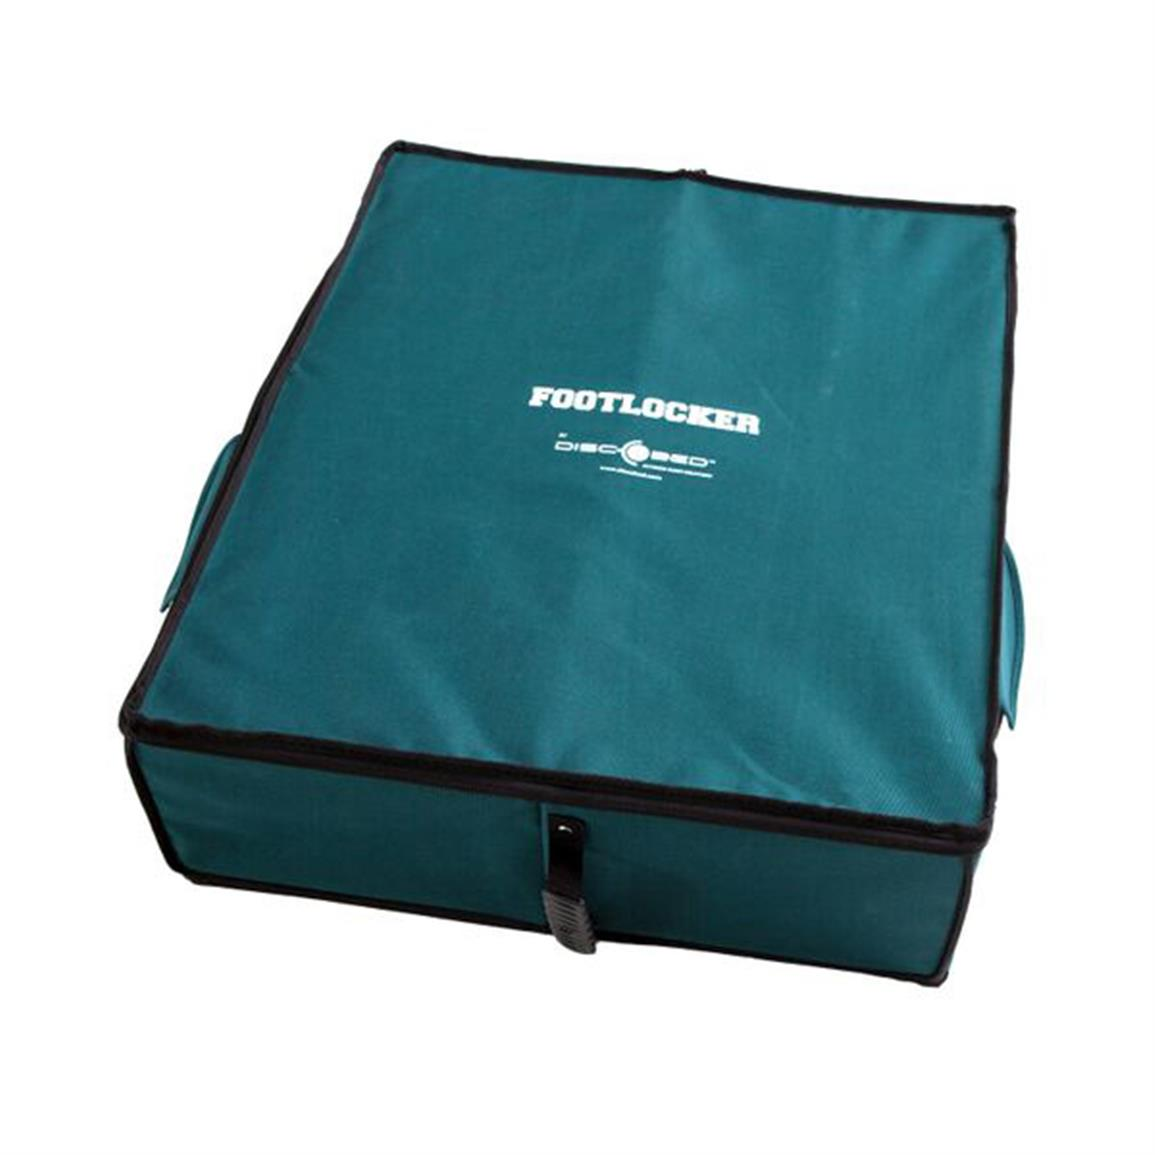 Water-resistant polyester with zippered, lockable closure